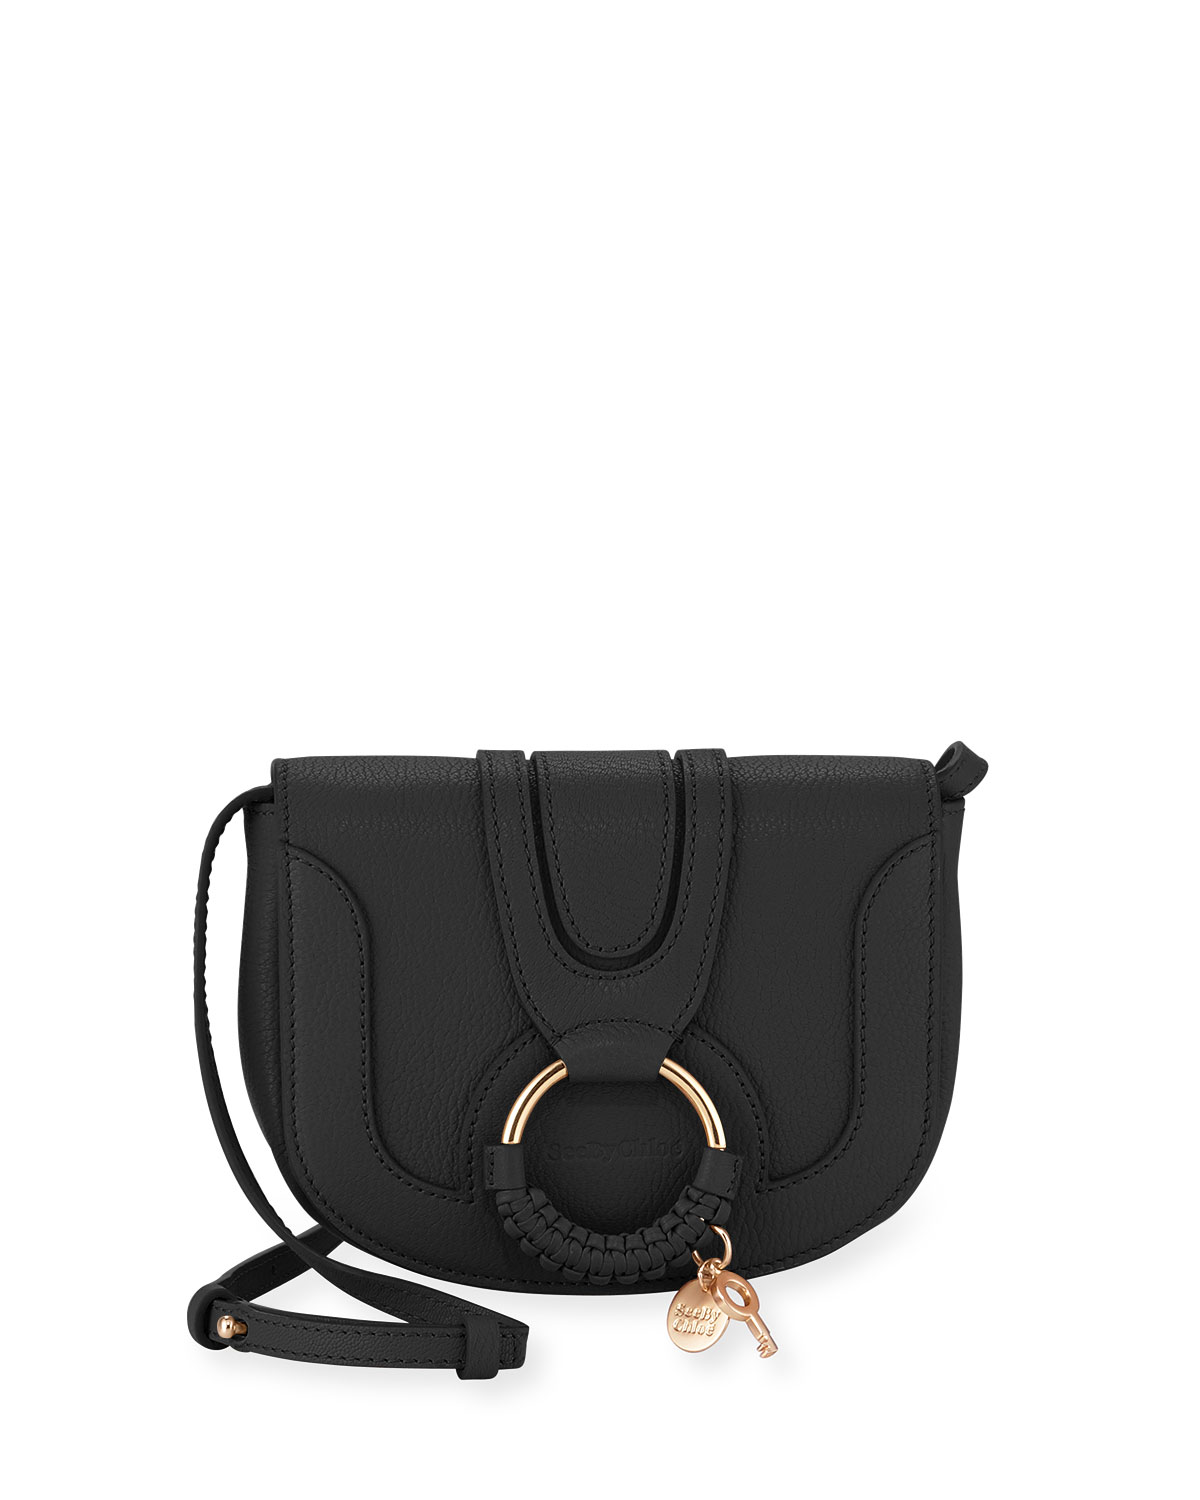 67a5457315 See by Chloe Hana Mini Pebbled Crossbody Bag